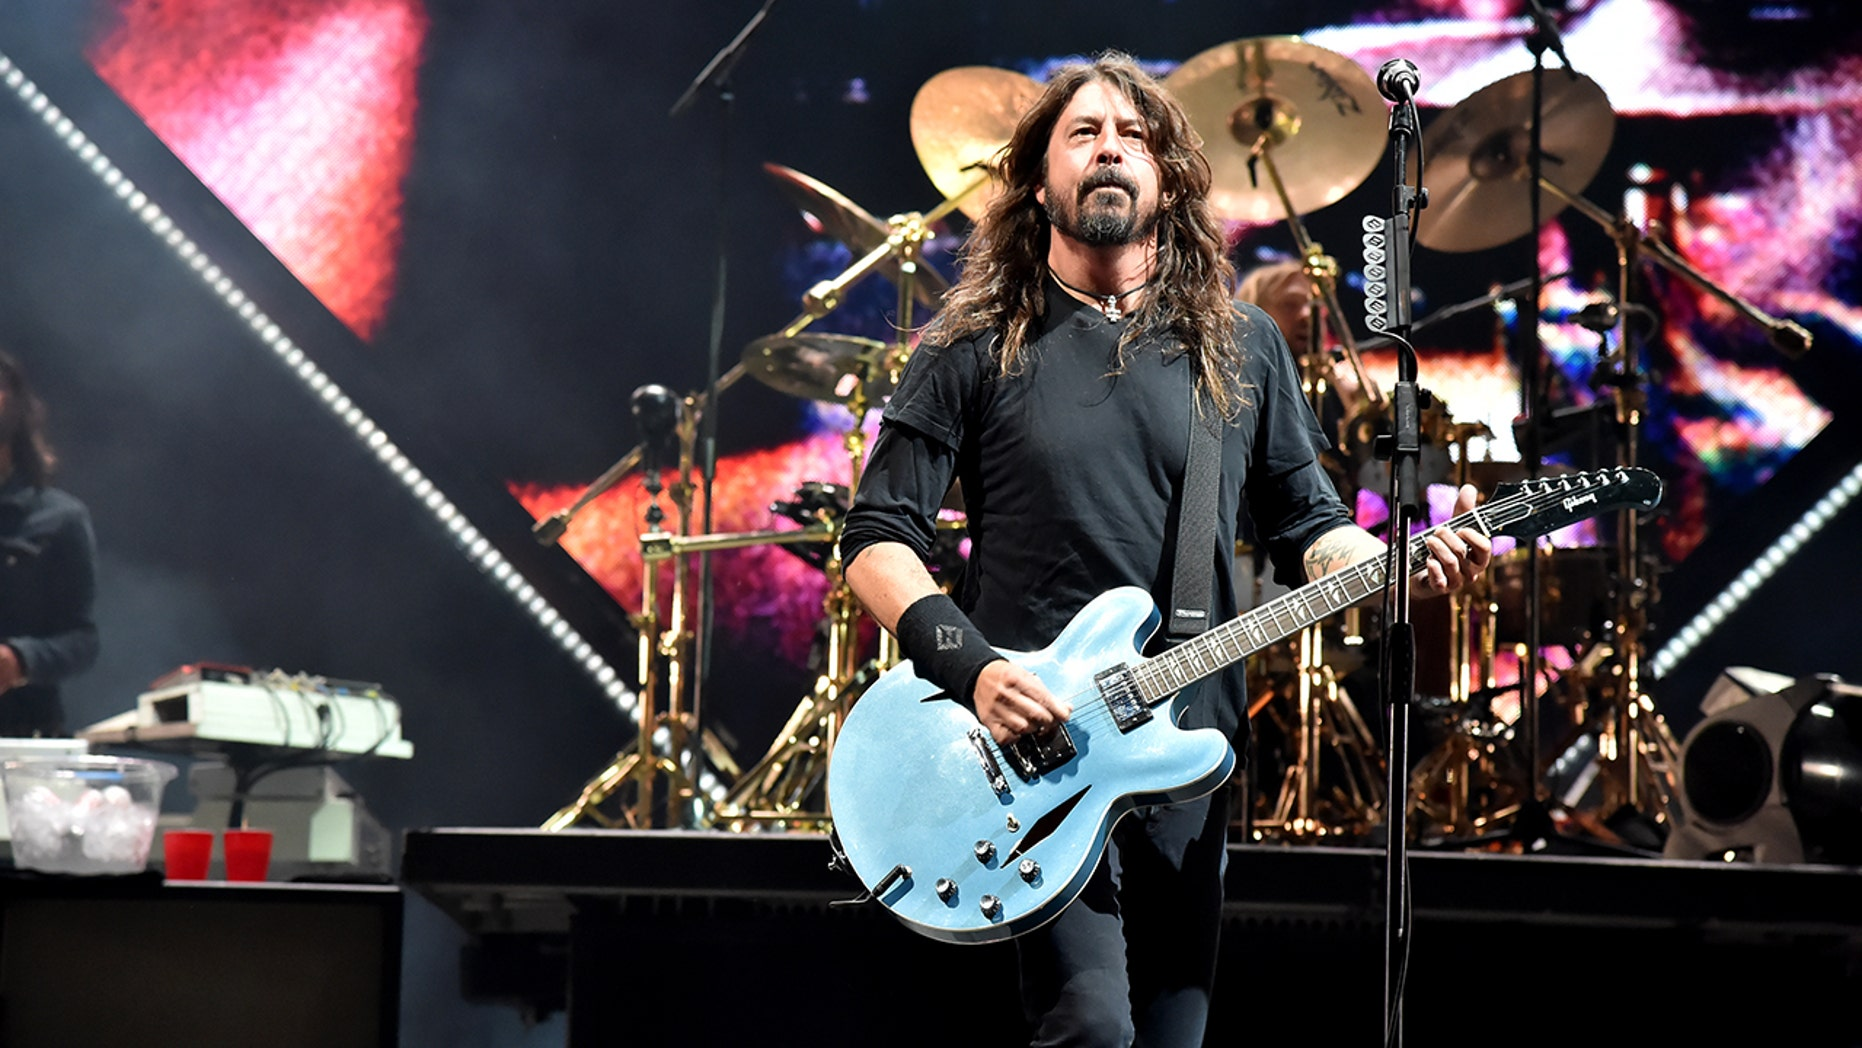 The leader of the Foo Fighters, Dave Grohl, acted.